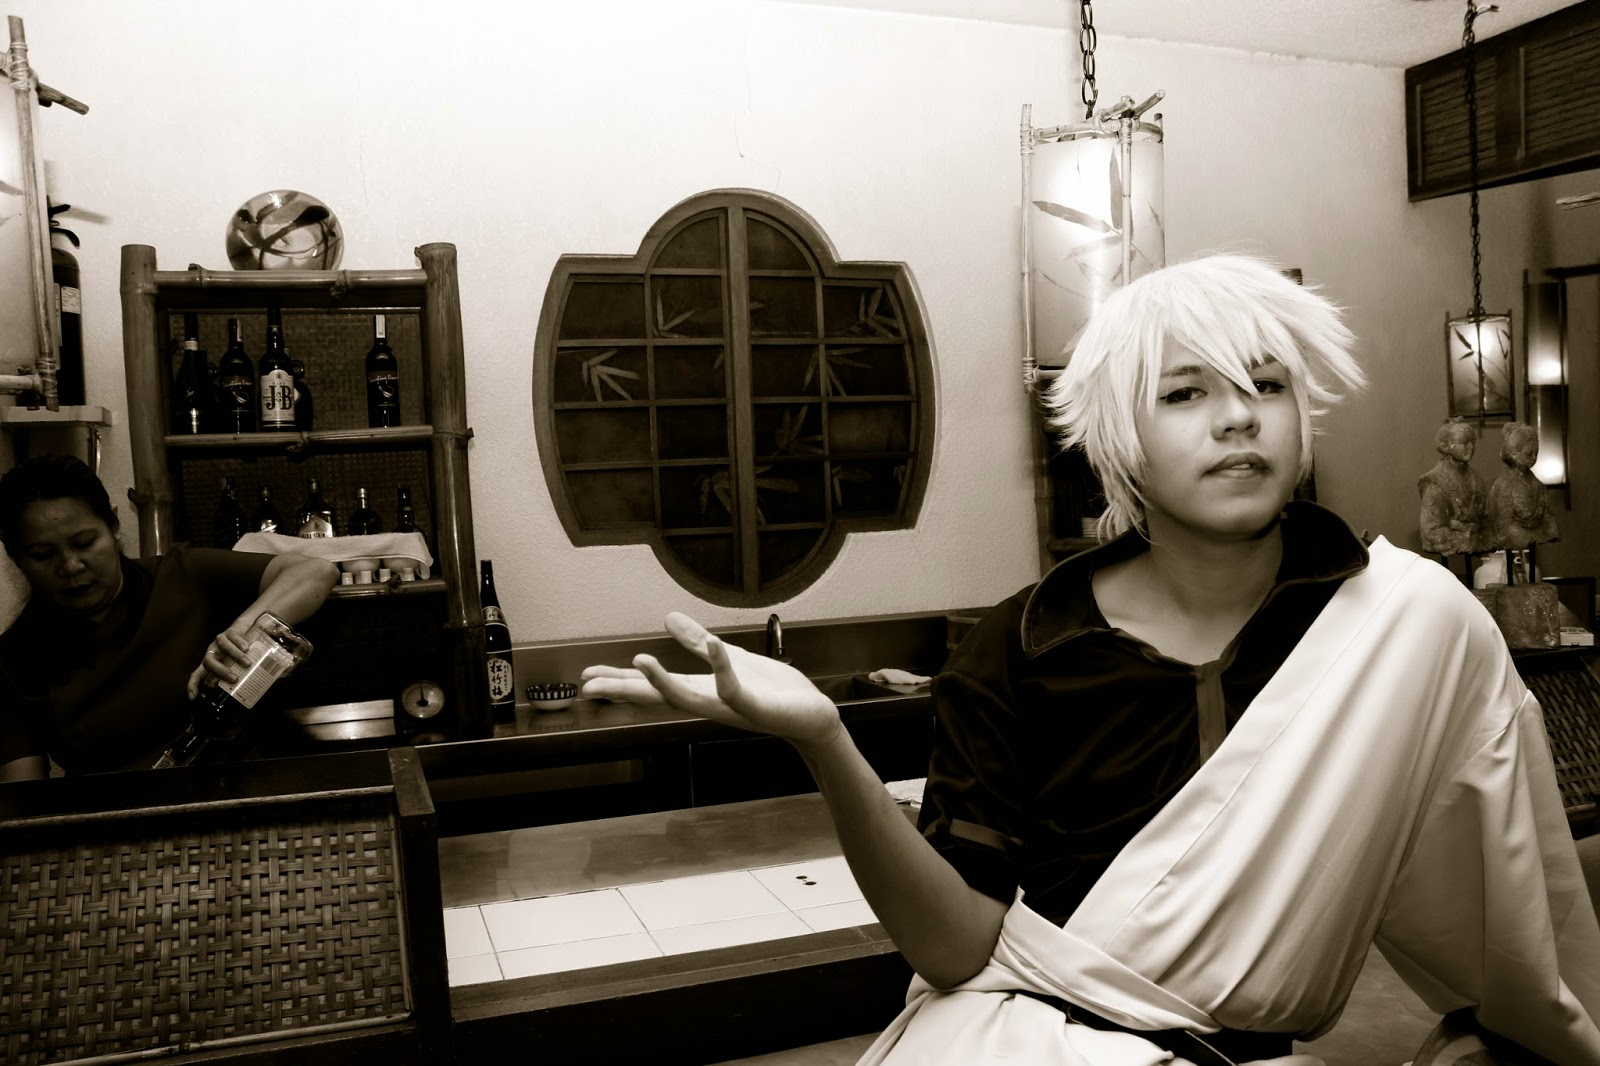 Stein Vivero as Gin from Gintama